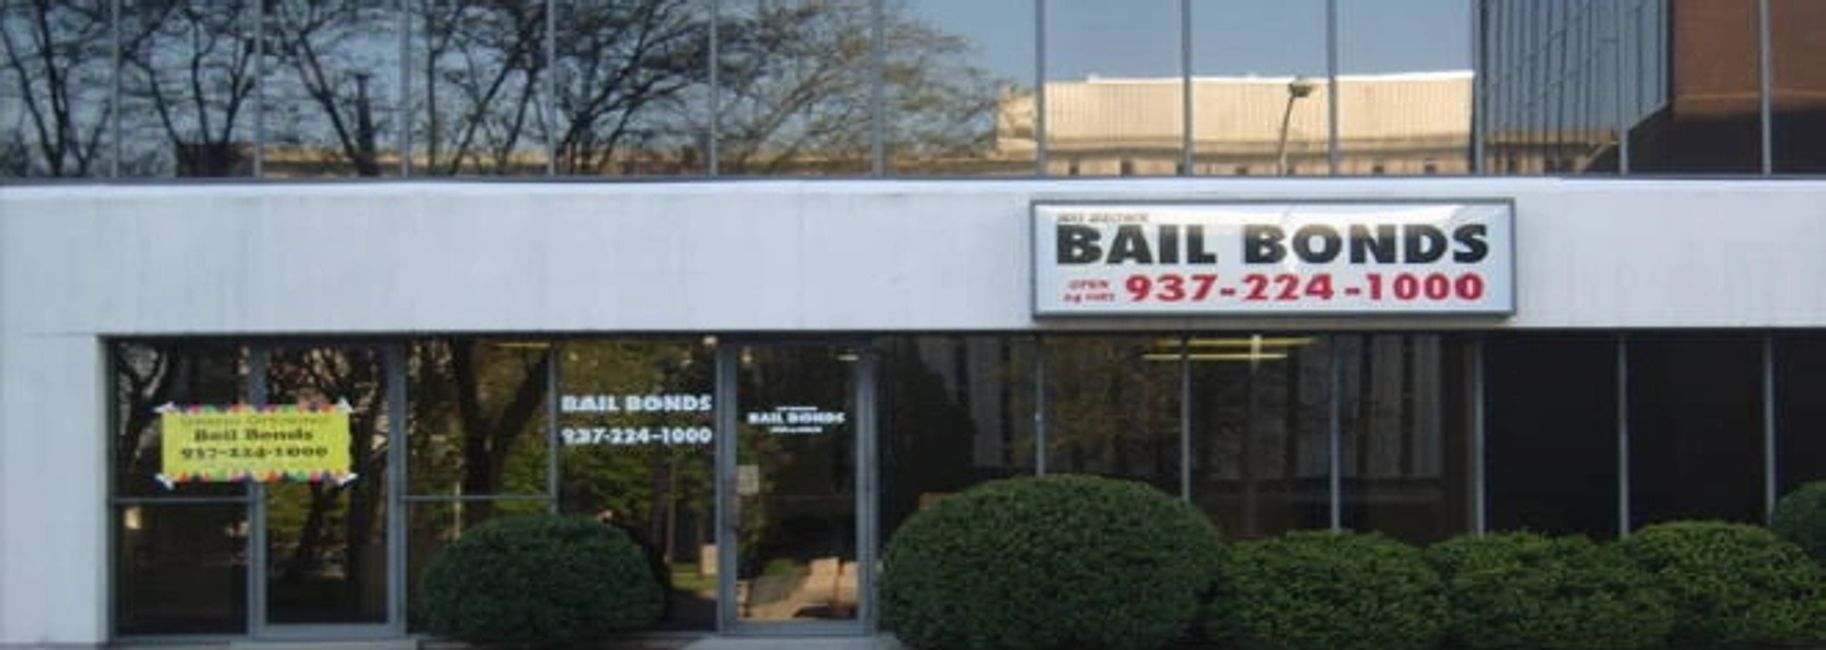 Jeff Brown Bail Bonds 937-224-1000 Dayton, Ohio.  Closest to the jail and Court house.